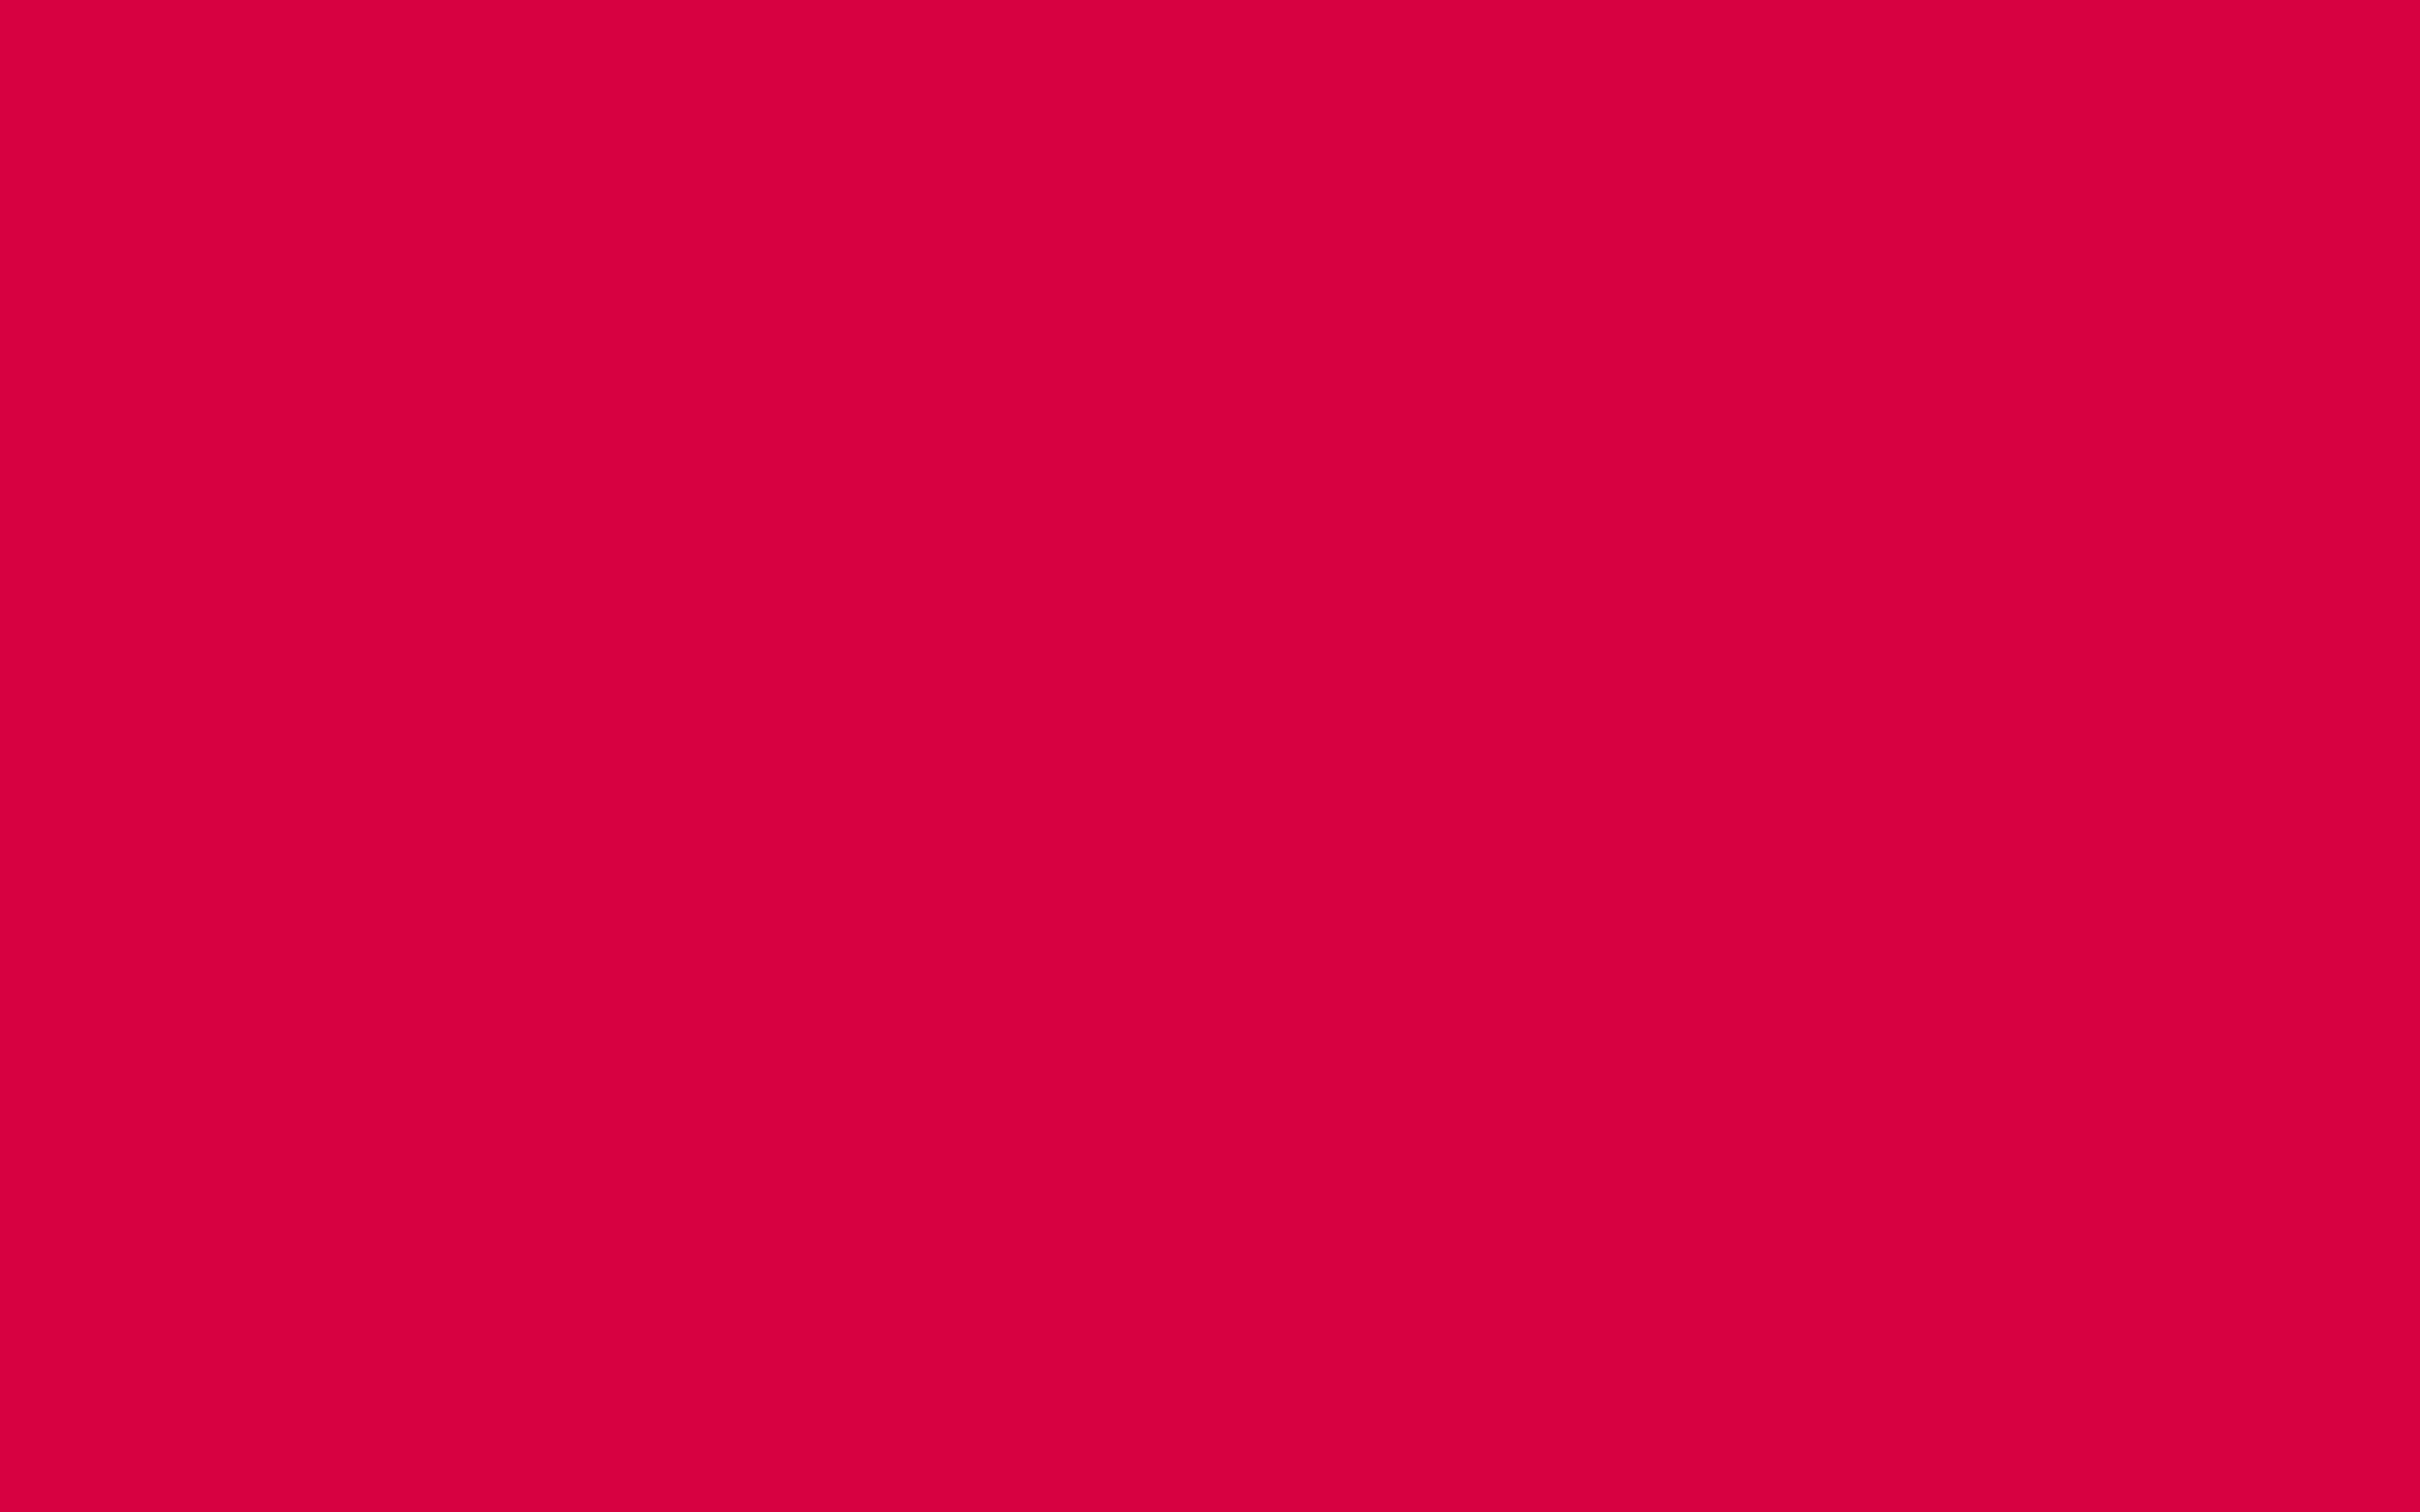 2880x1800 Rich Carmine Solid Color Background